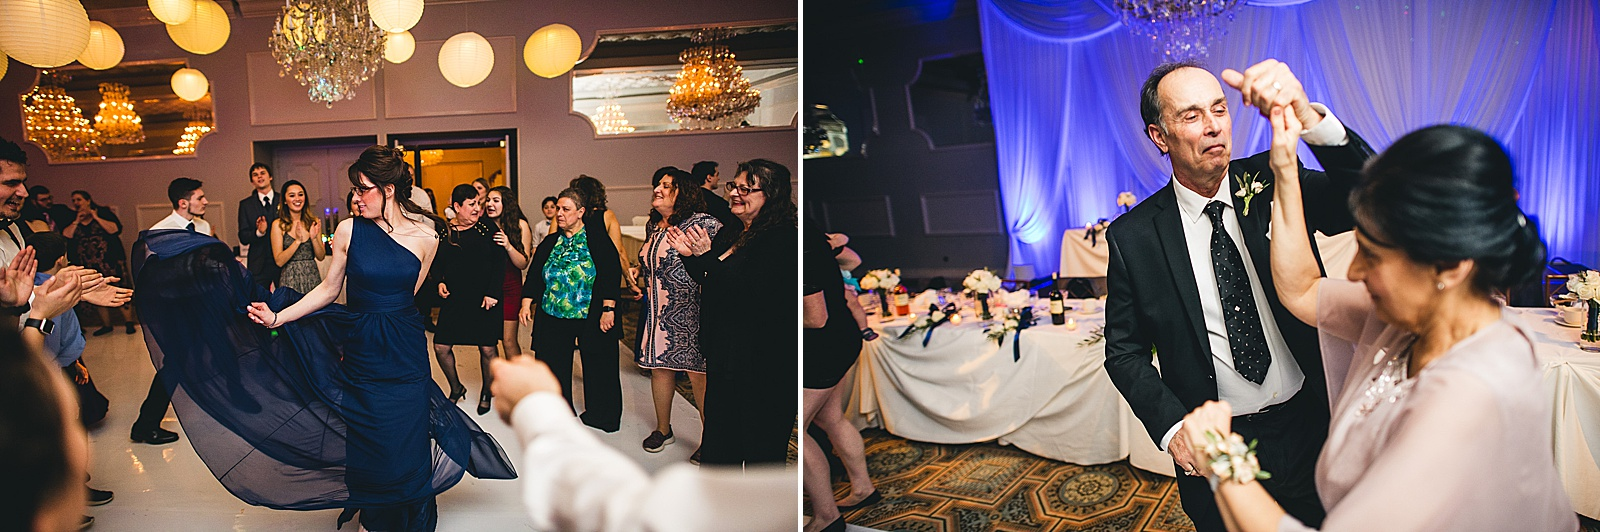 38 best reception photos in oakbrook - Oakbrook Wedding Photos at Drury Lane // Marina + Joe